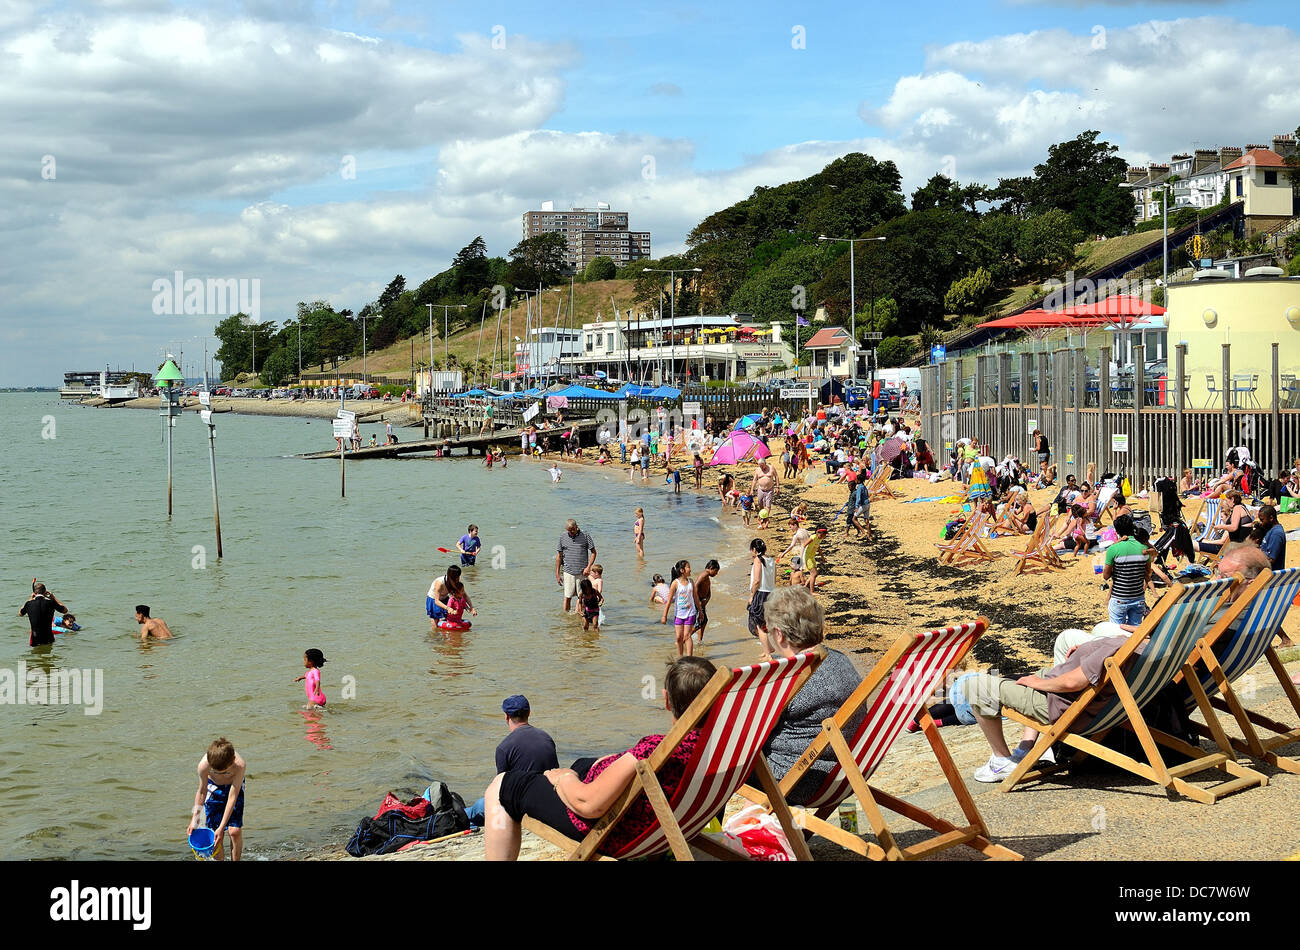 Busy seafront in summertime at Southend on Sea Essex England UK Stock Photo